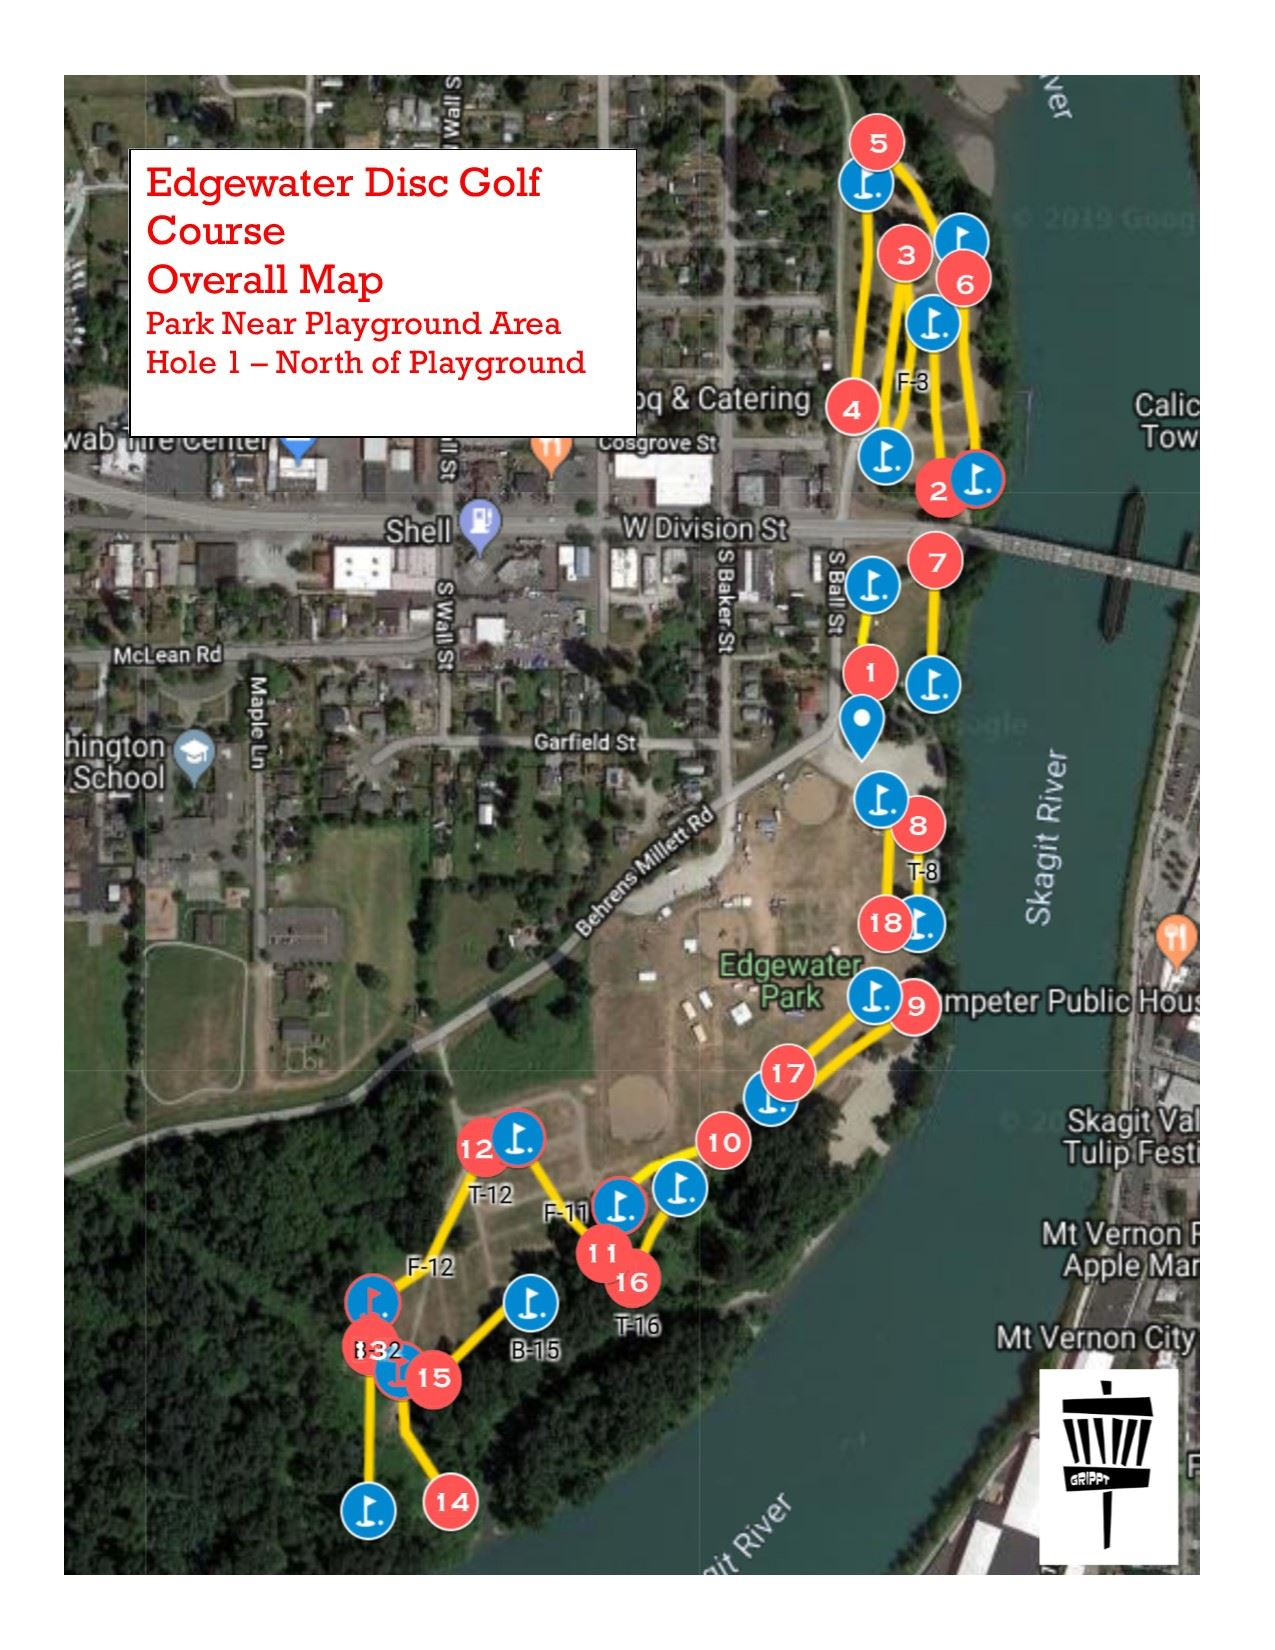 Edgewater Disc Golf Course Map